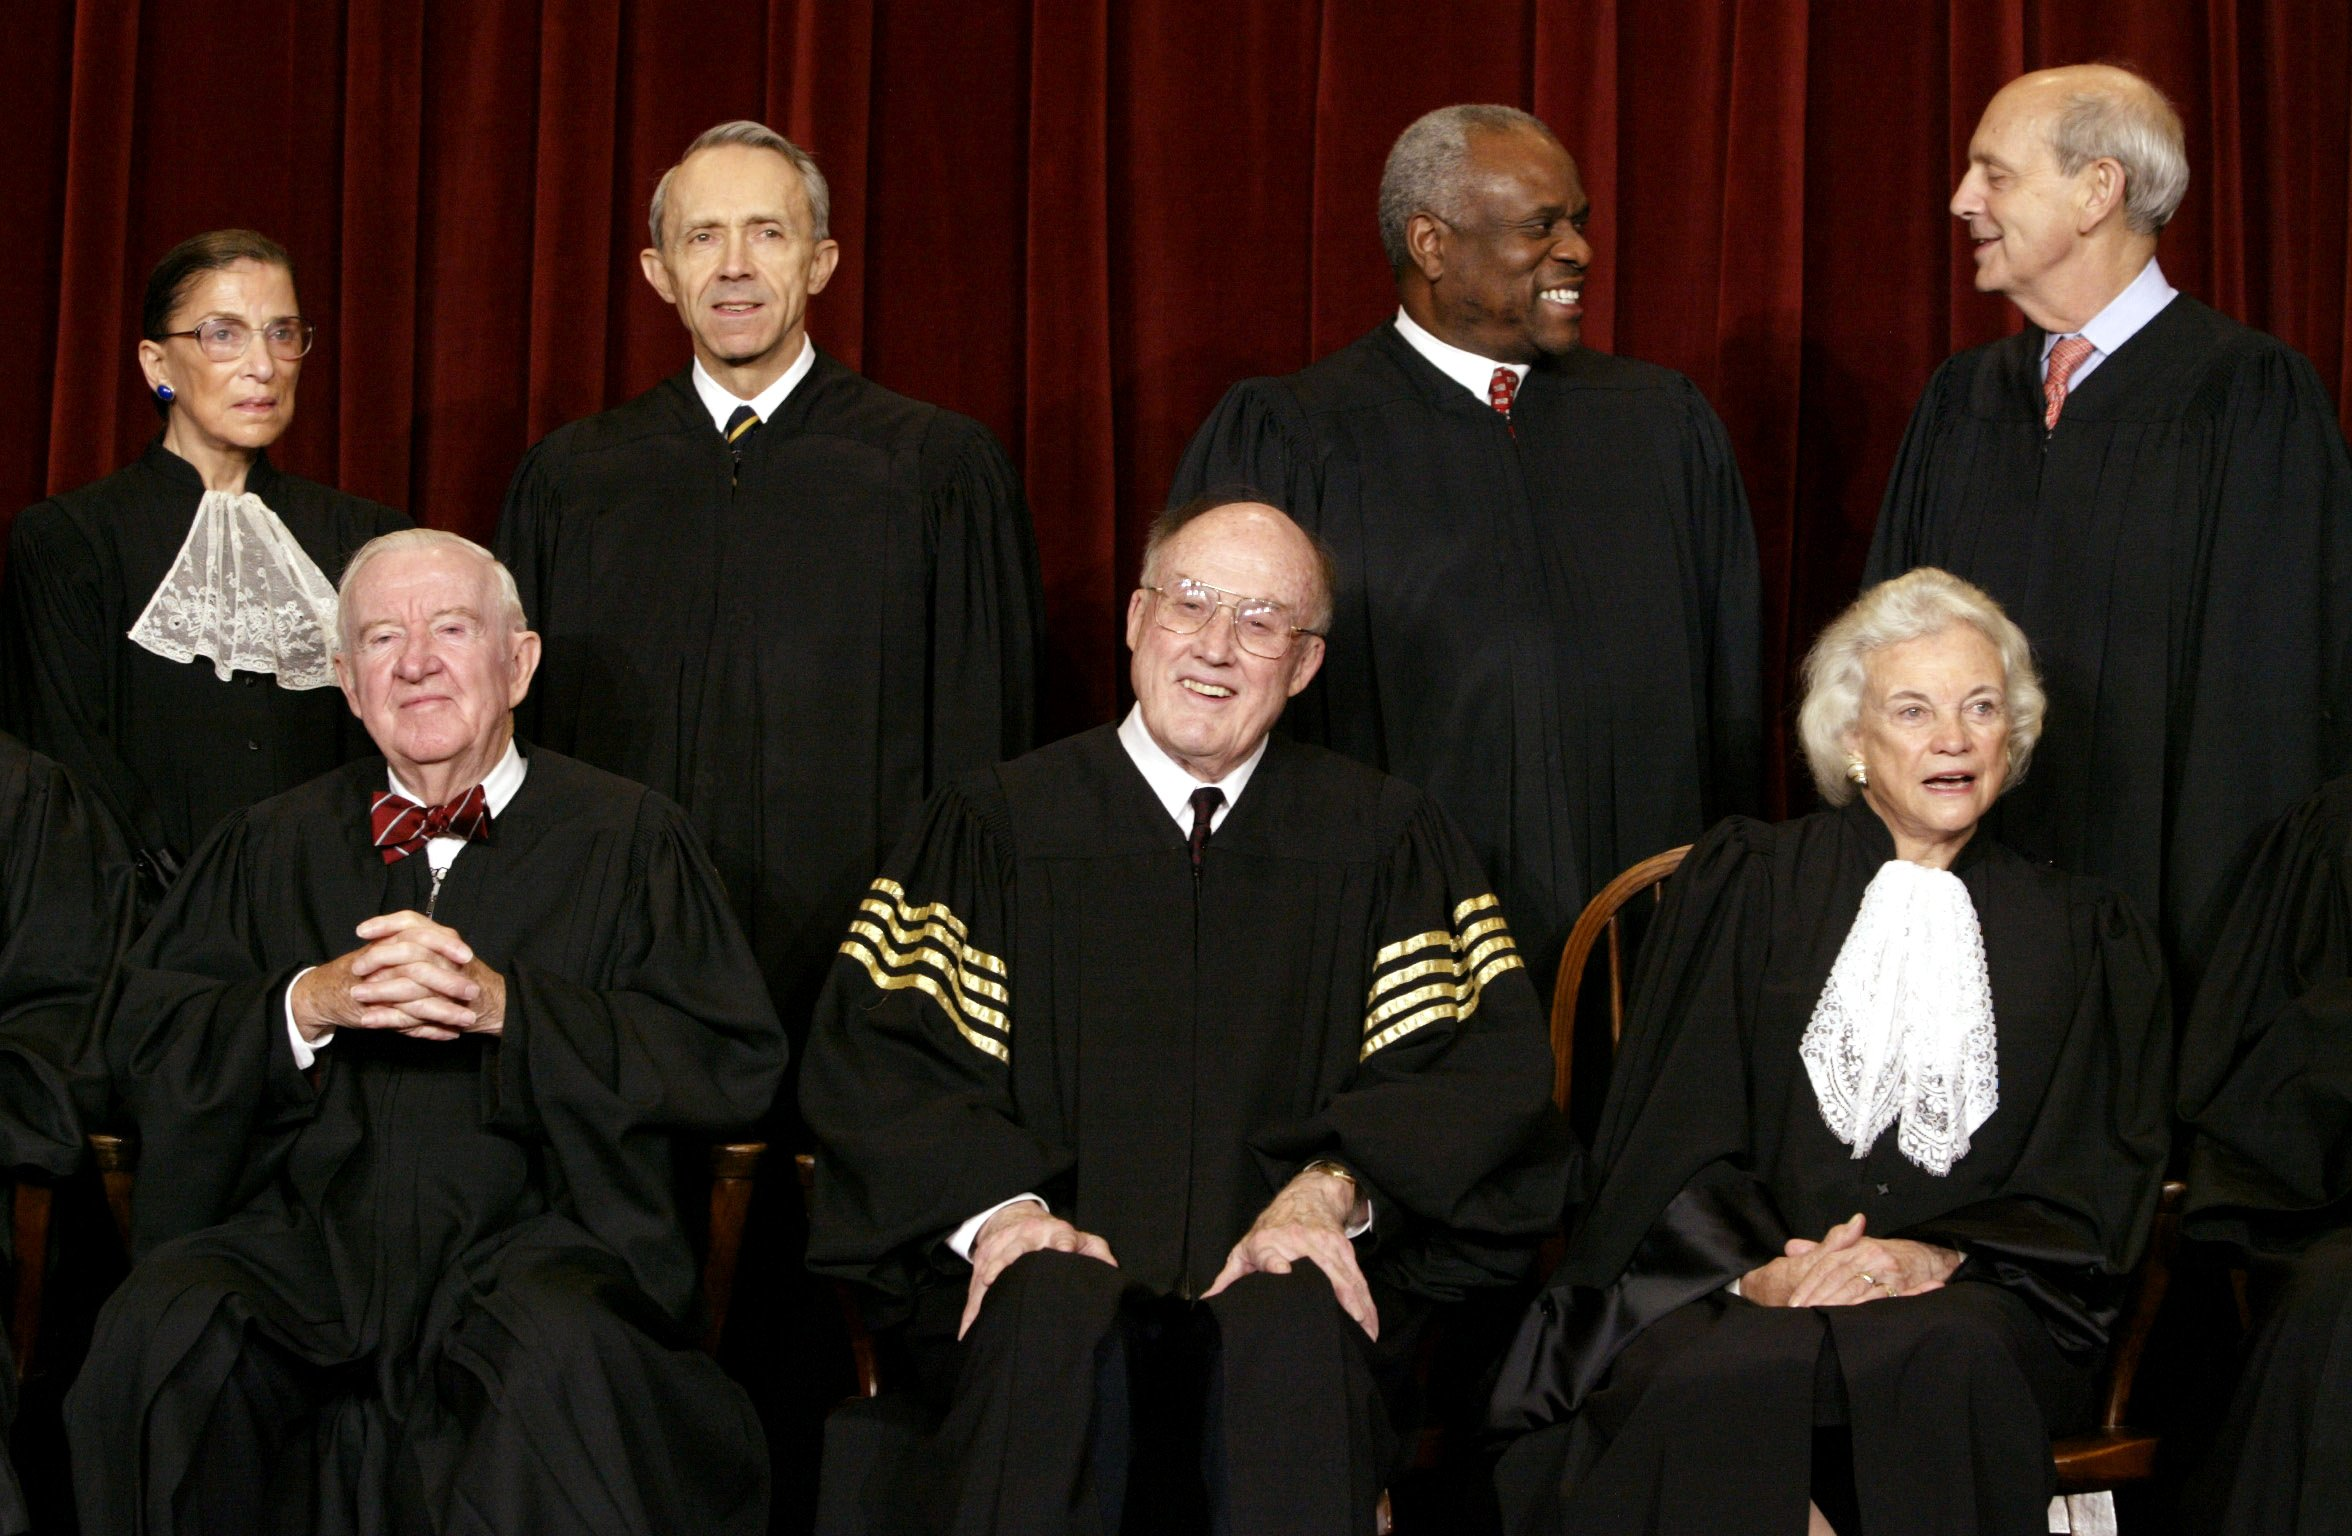 Chief Justice William Rehnquist, bottom row at center, seated next to Justice Sandra Day O'Connor in 2003. (Reuters)